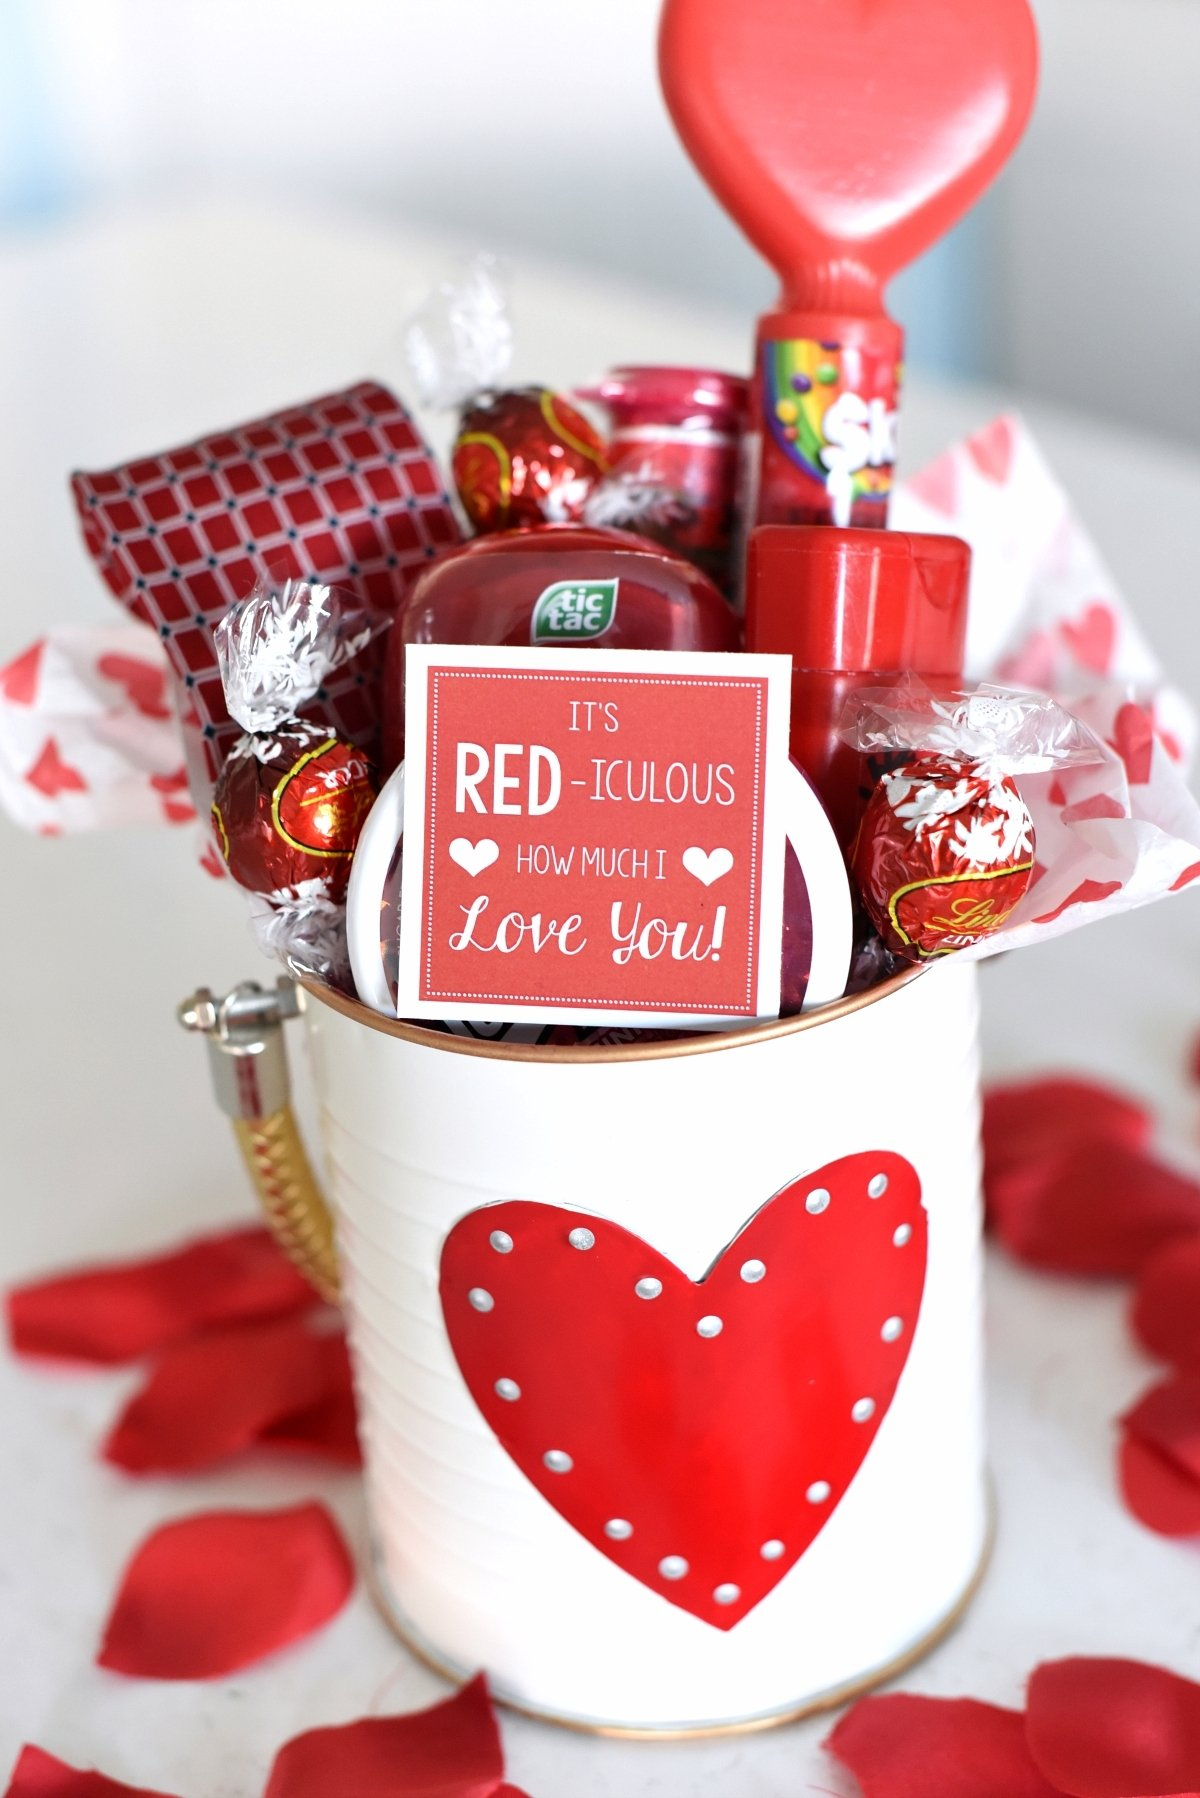 10 Trendy Valentine Gift Ideas For Wife cute valentines day gift idea red iculous basket 10 2020